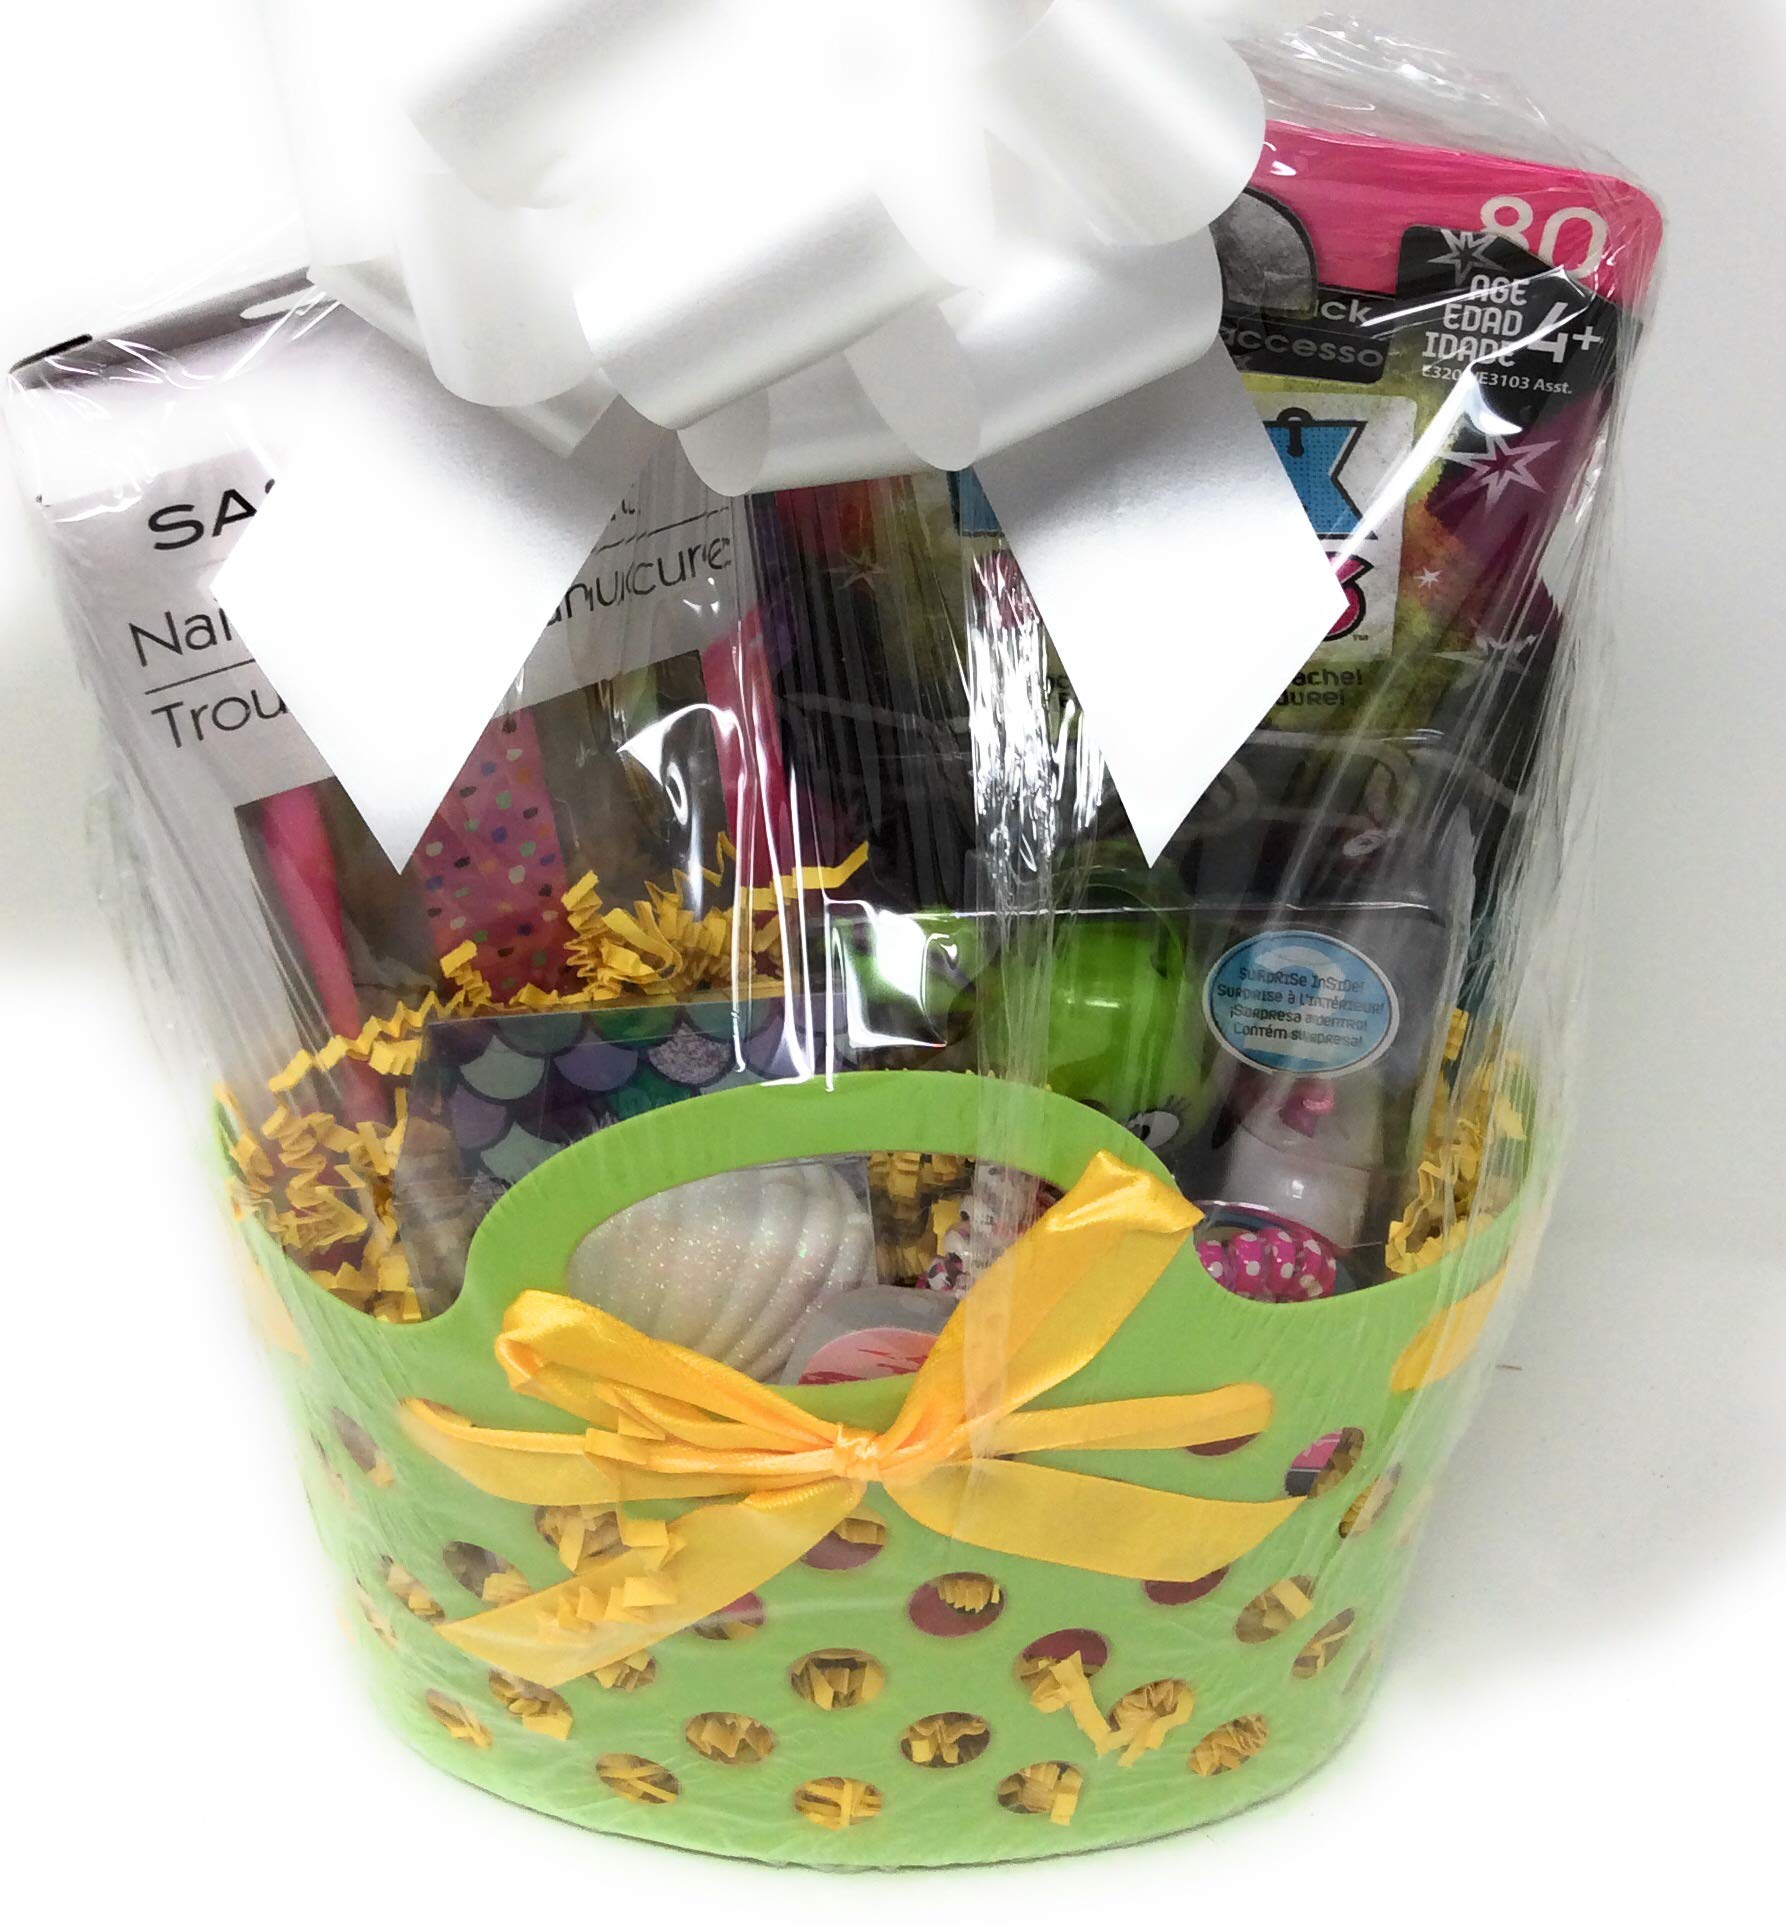 Happy Easter Birthday Basket Kids Toddlers Gift Children Party Fun Assorted Pre Made Baskets -Dress Up GSB by Easter and Birthday Basket